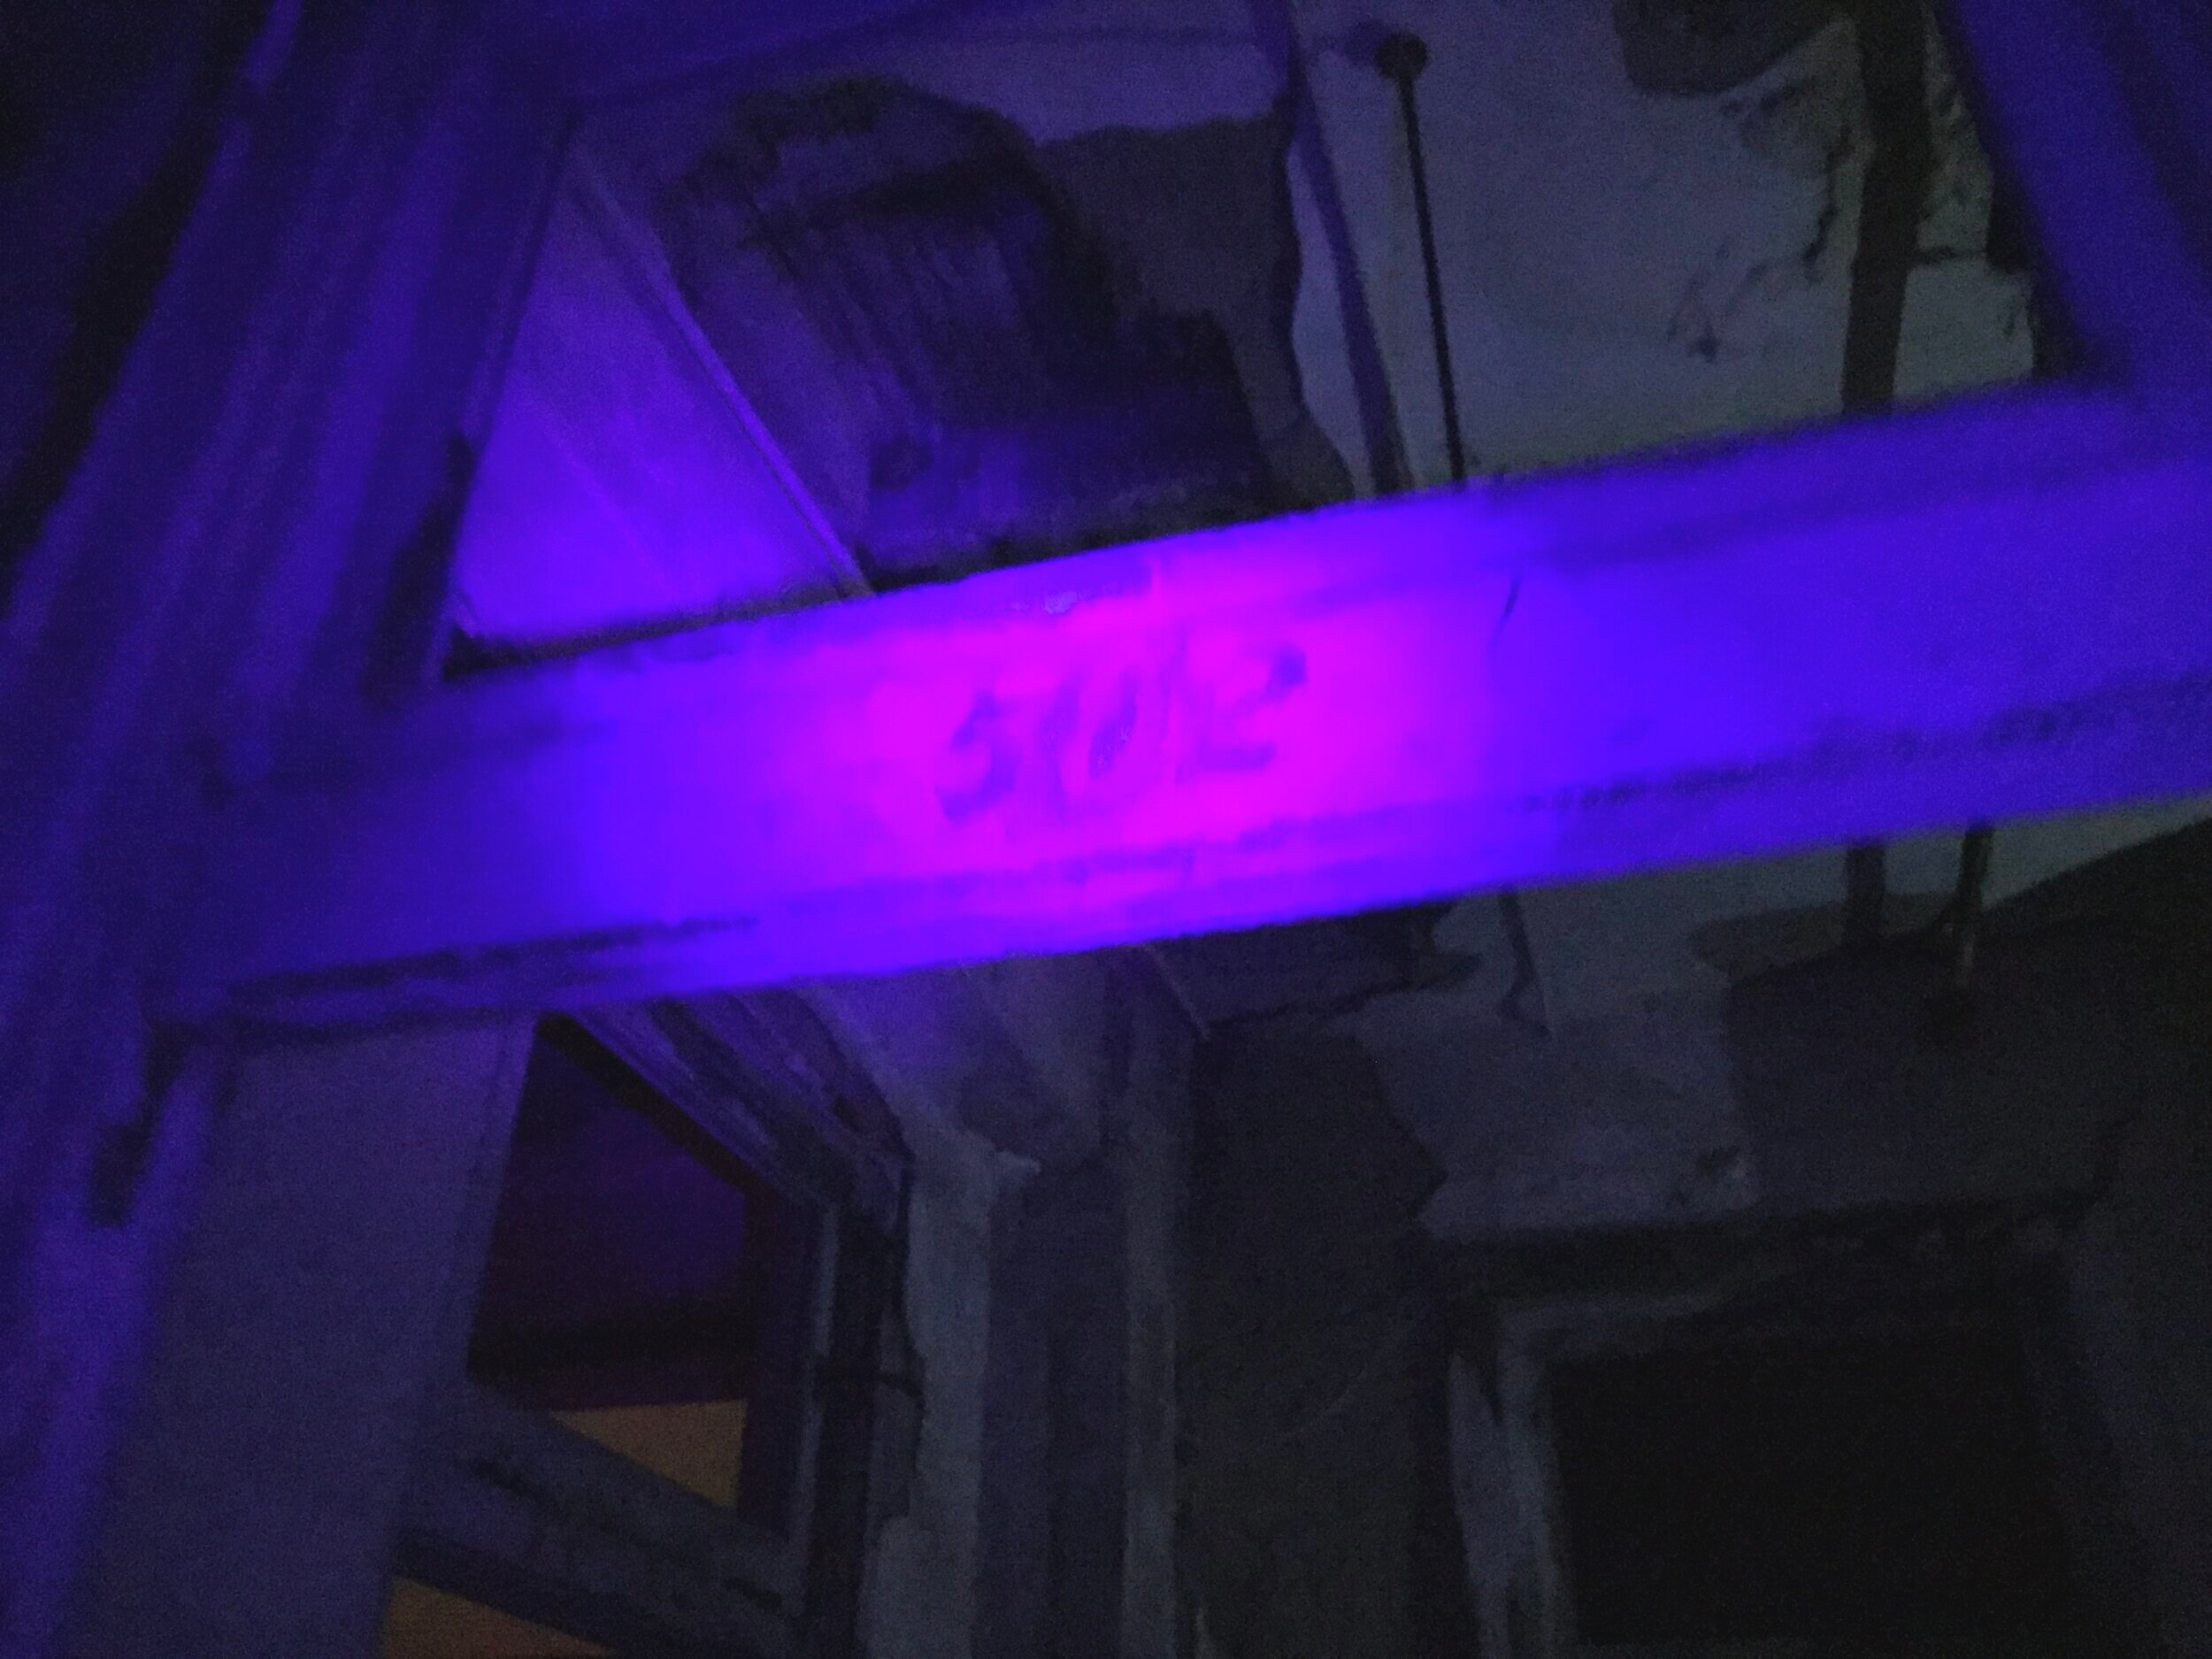 Room 502, the location where a nurse supposedly hanged herself either in the room (which is was a bathroom) or just outside the door. One of the many ghost stories at Waverly. The spot where the door numbers were is illuminated with UV light.